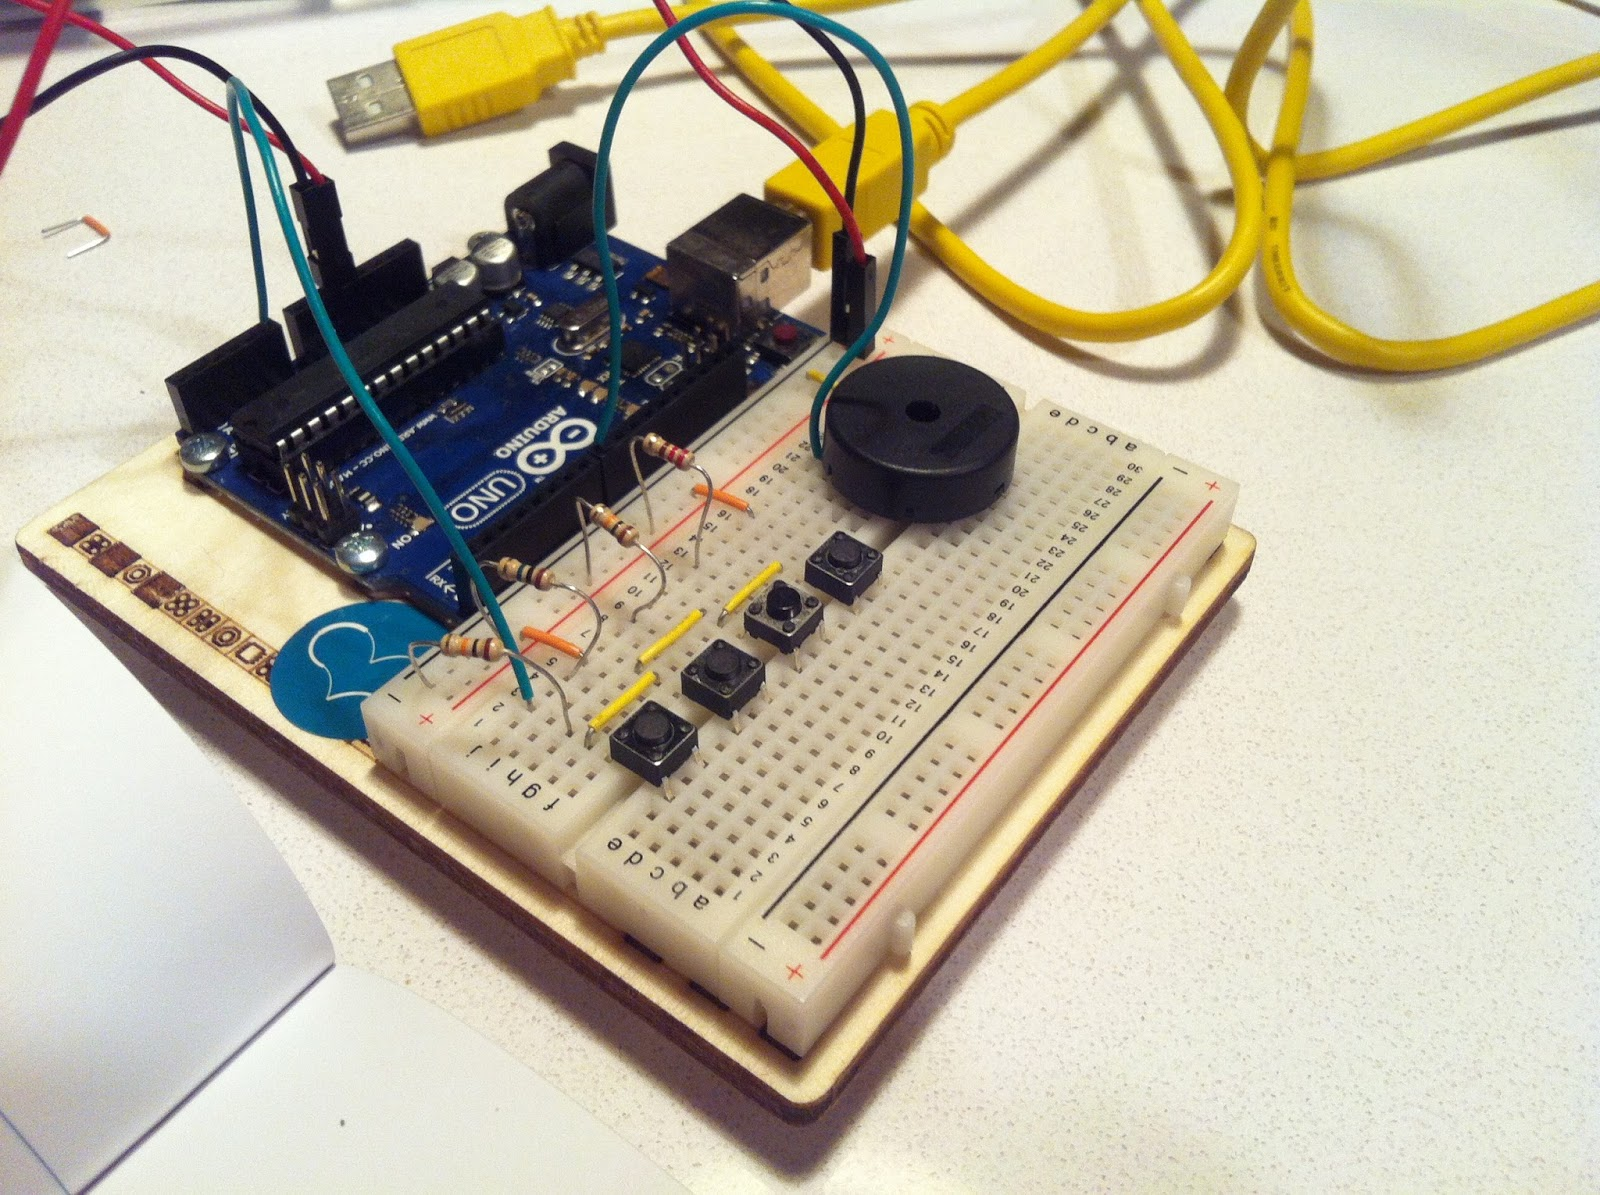 Digital Fabrication and Design: S100 - The Arduino Starter